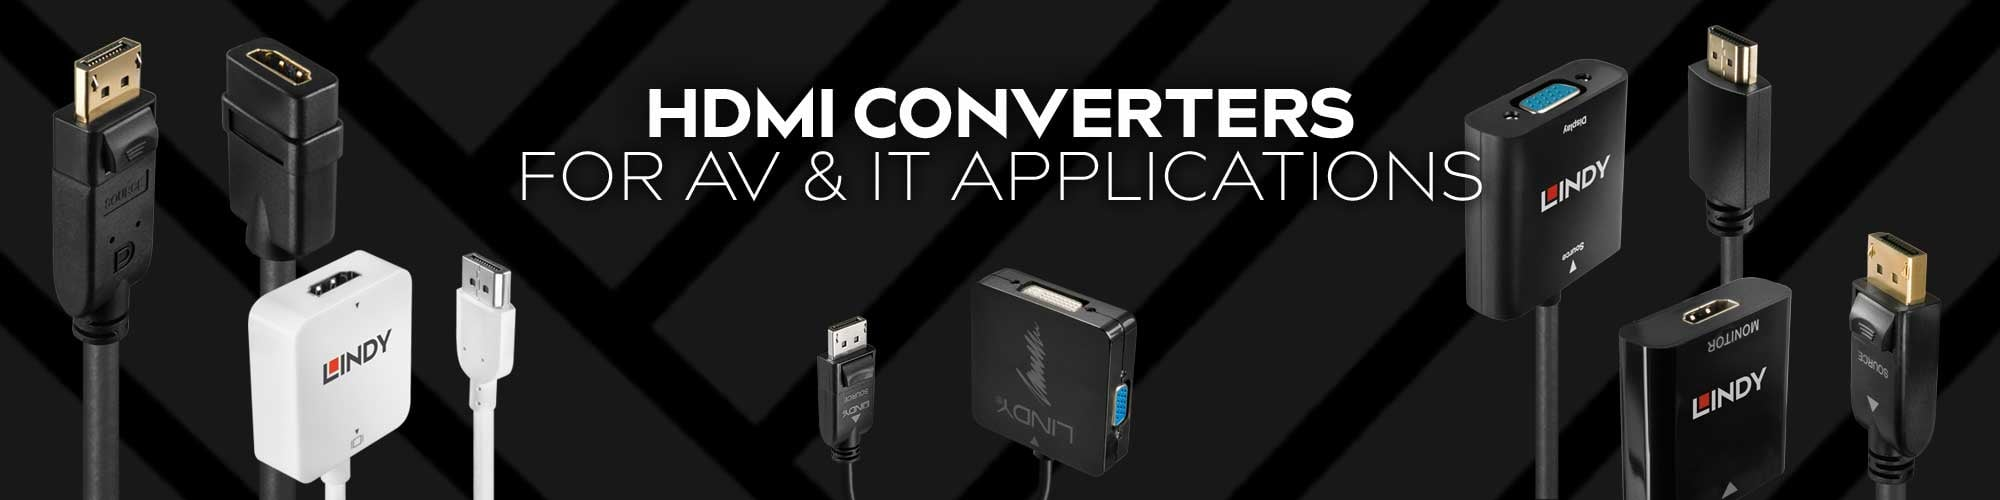 Lindy HDMI Converters